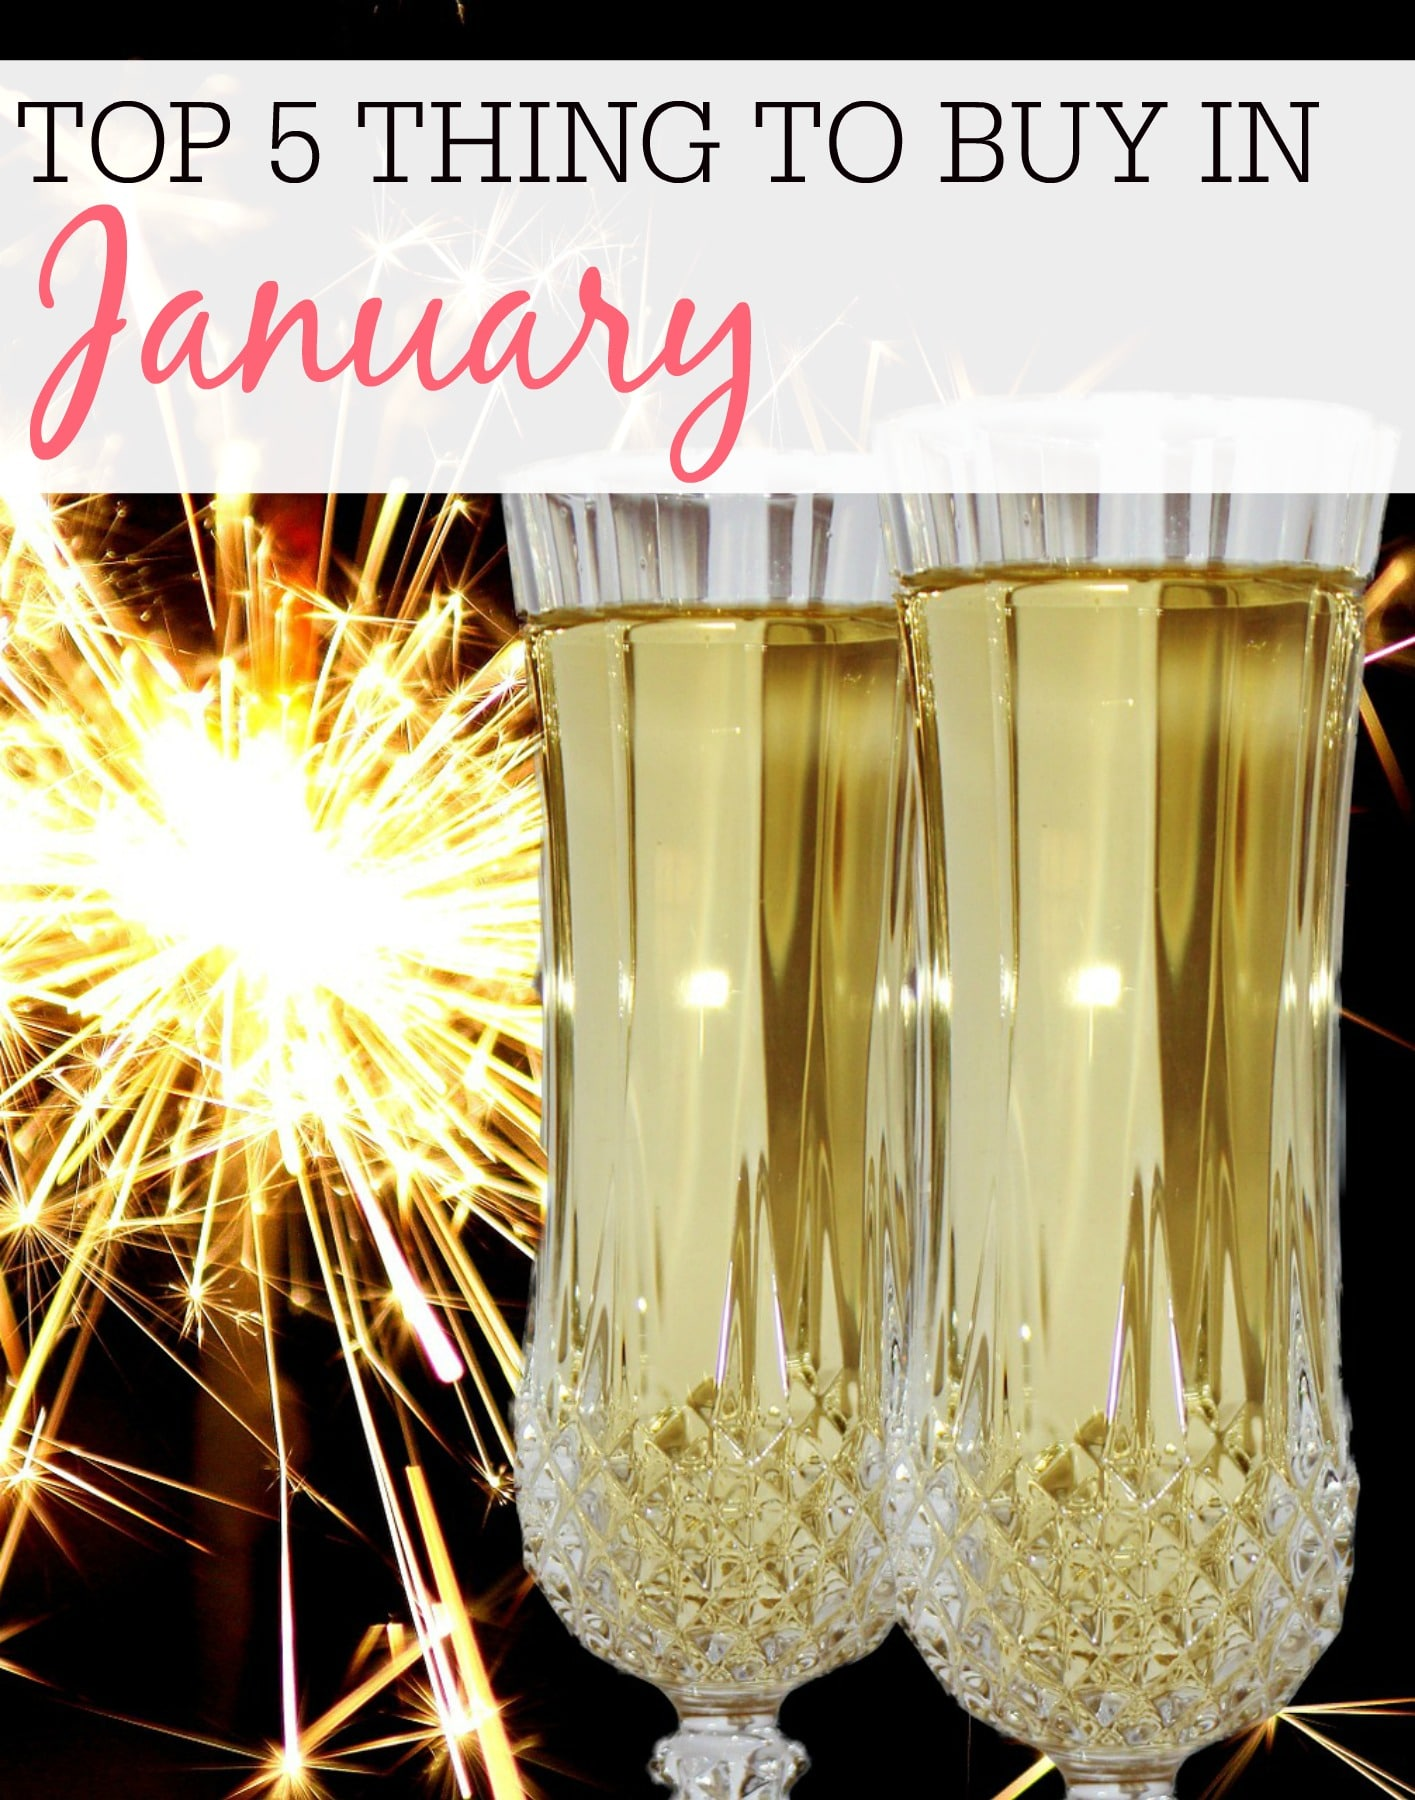 Top 5 Things To Buy in January